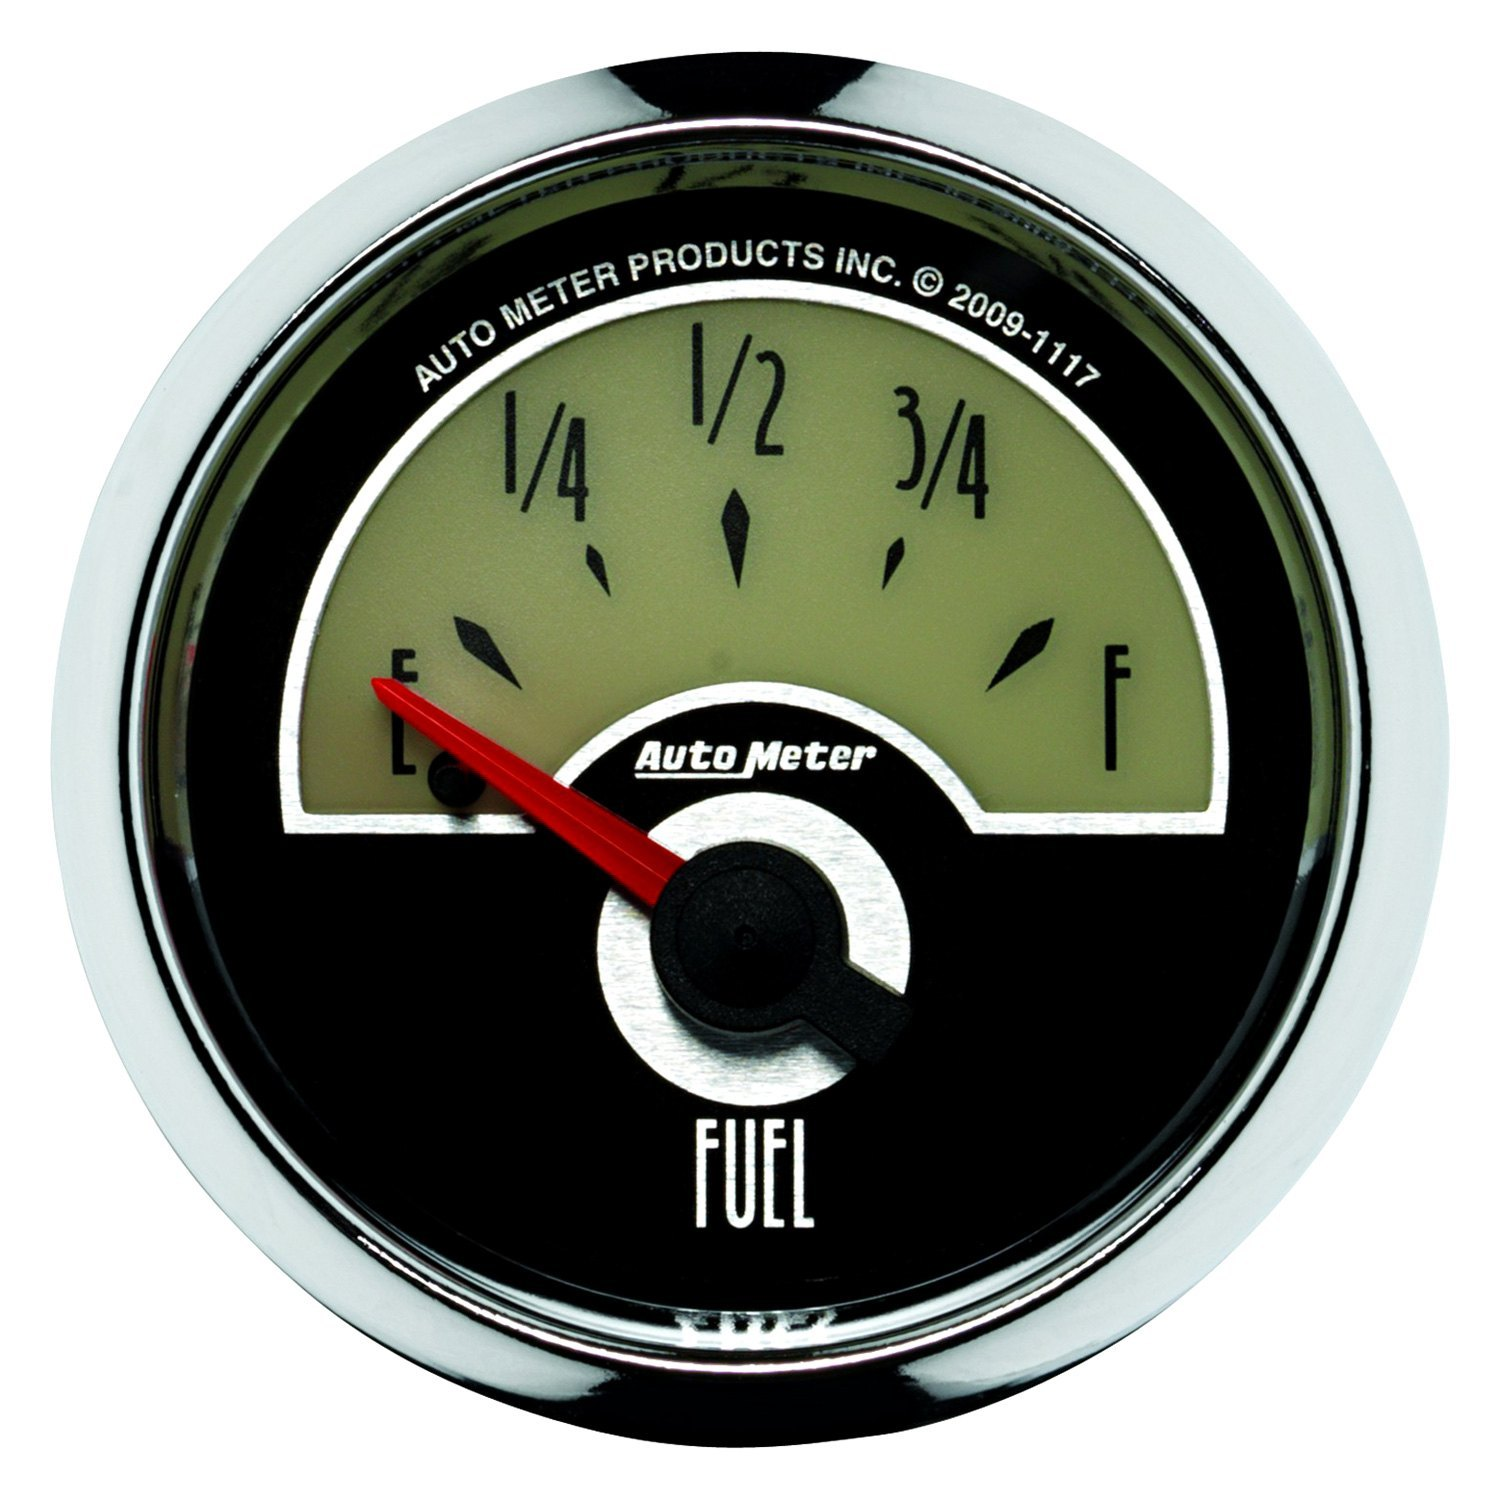 fuel level indicator Hi, i want to make a fuel level sensorthe system should be able to sense the fuel level in the tankcan anyone help me providing information.